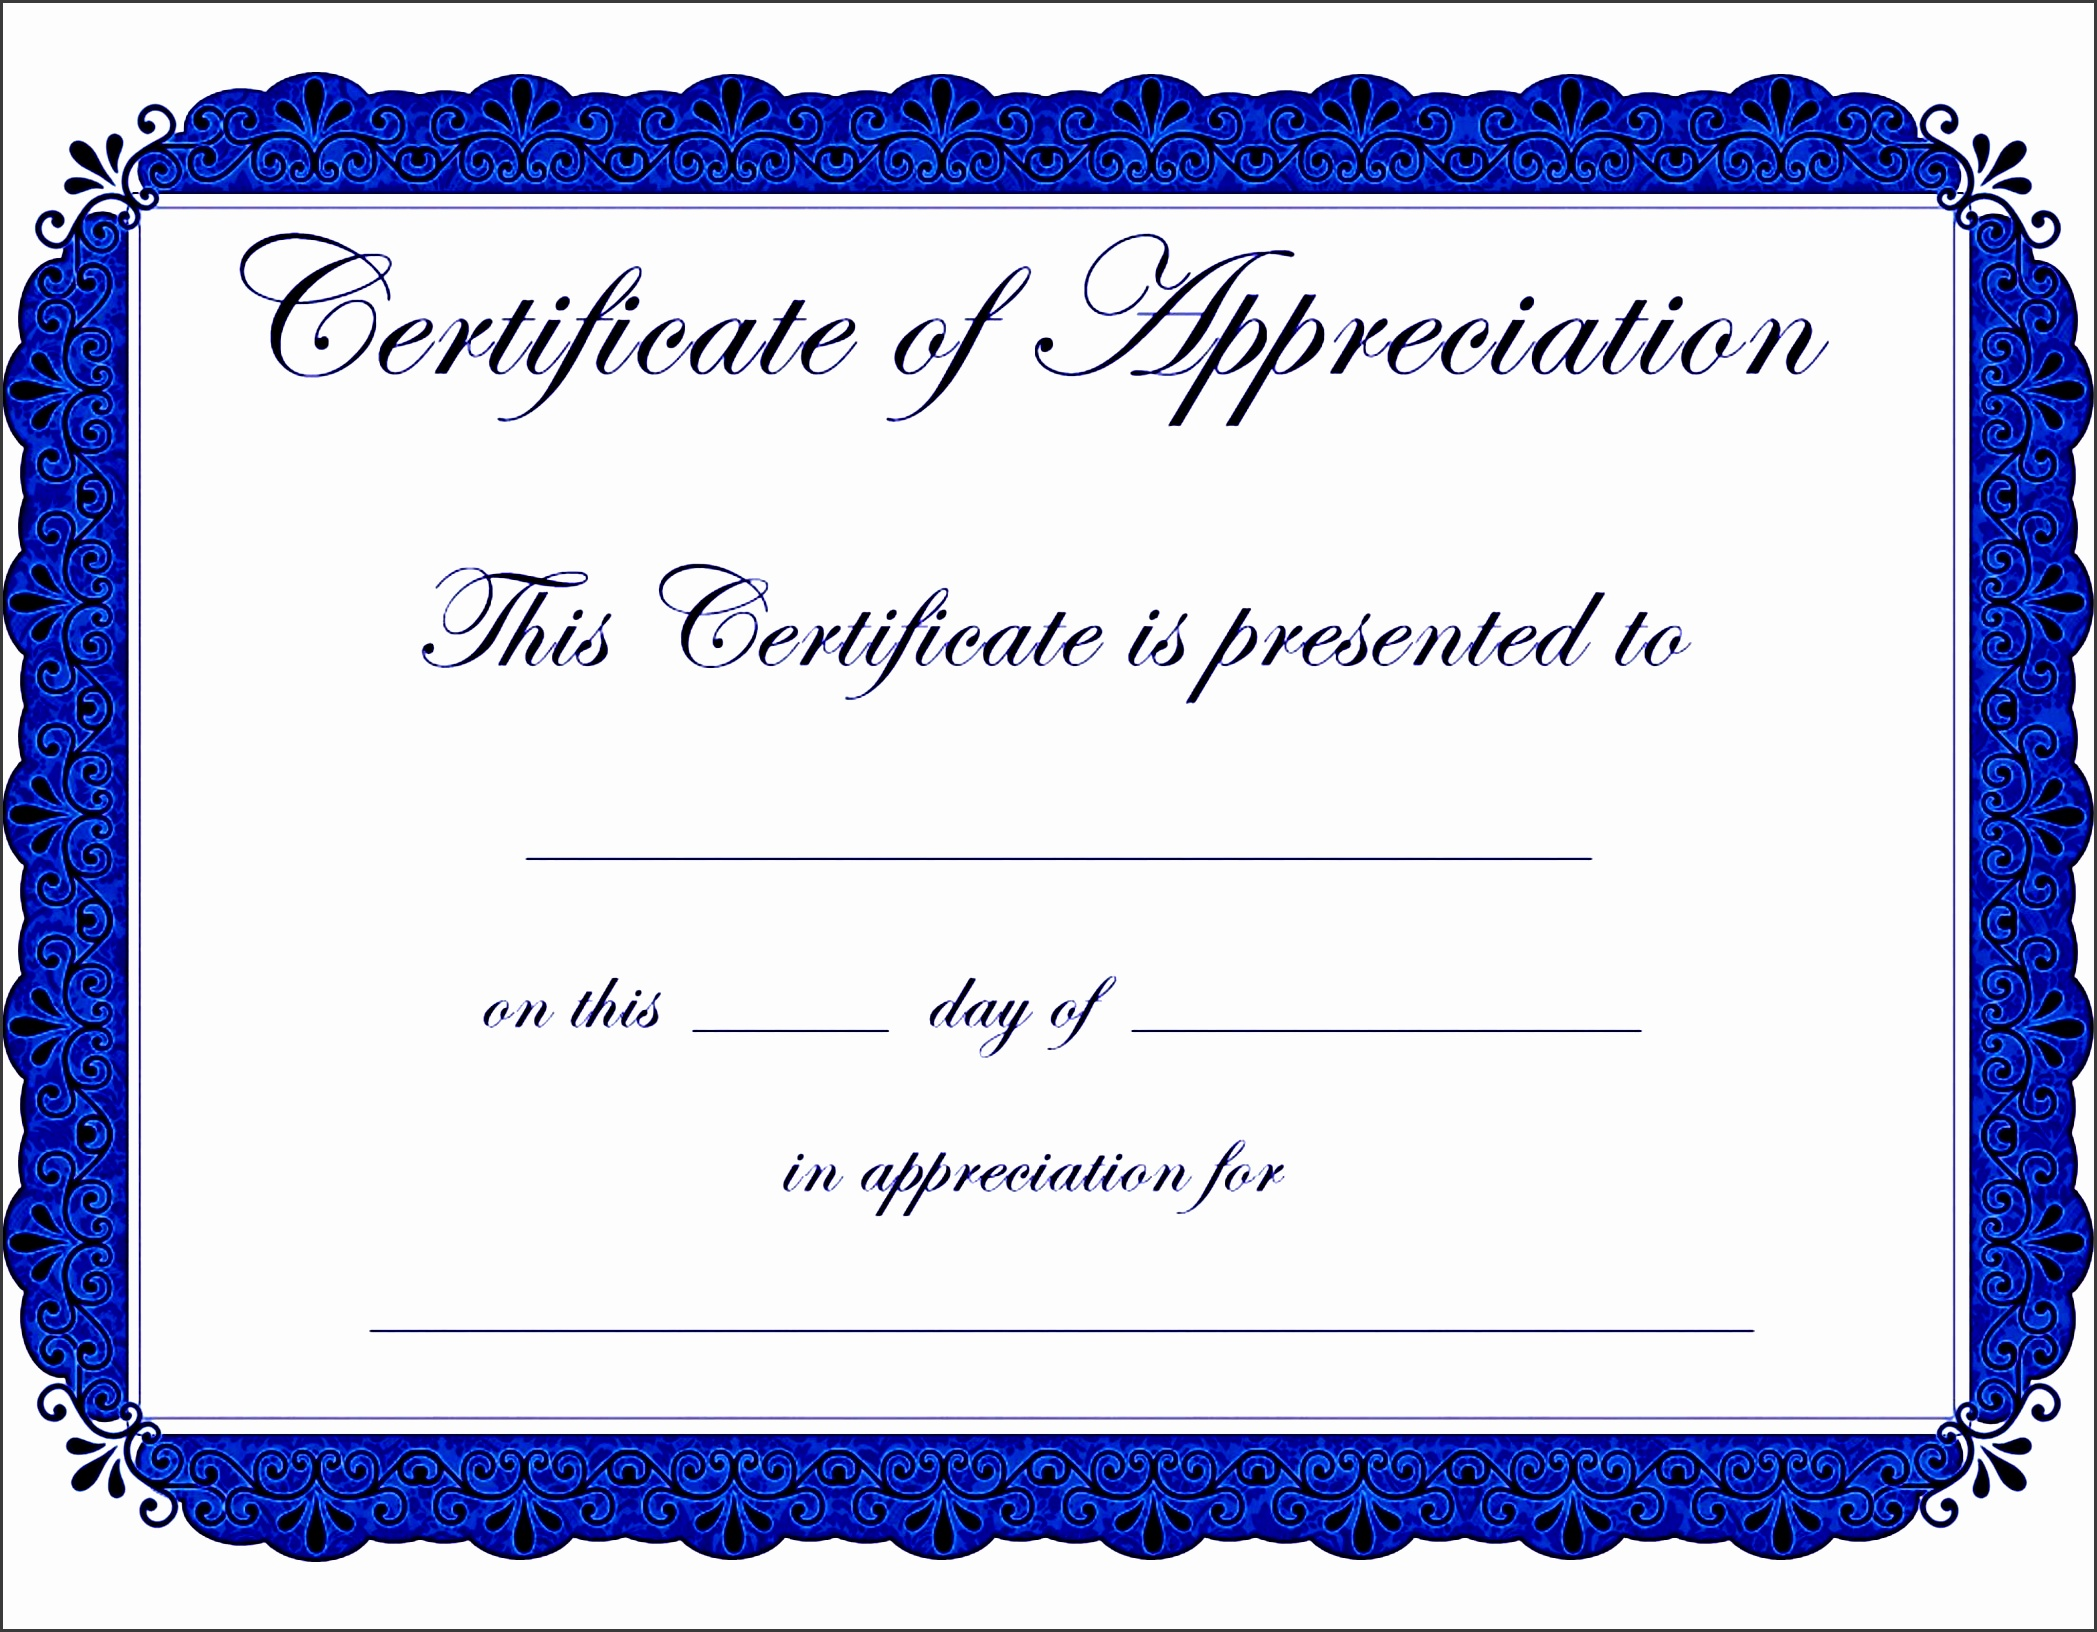 appealing award template word for certificate of appreciation with blue color theme and floral motif